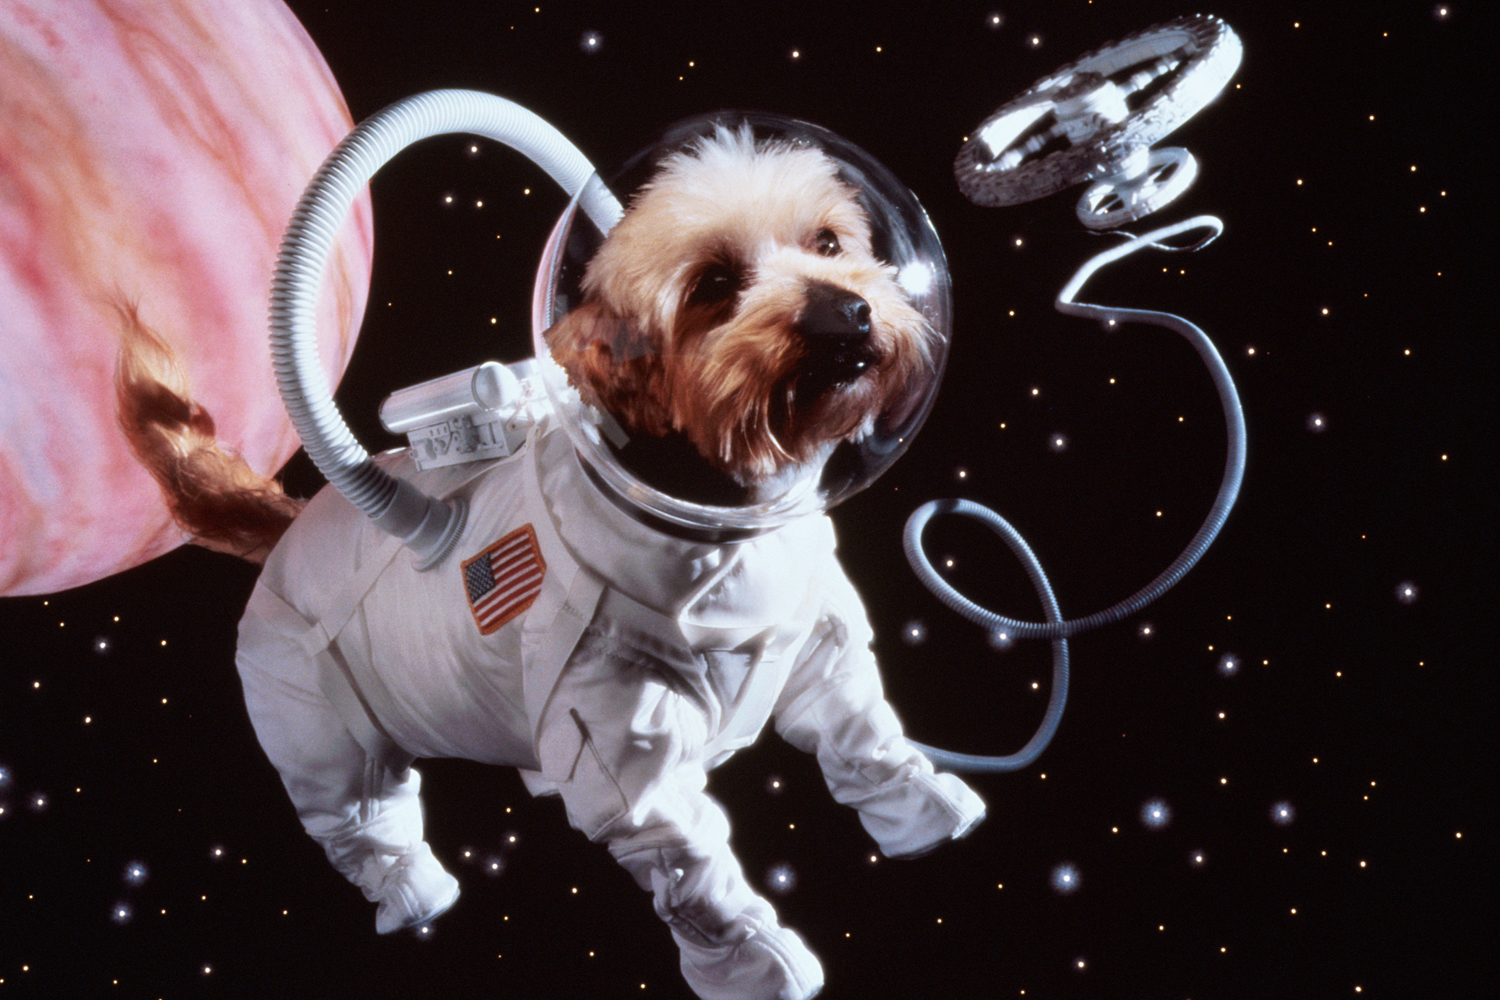 Unlike this stock photo, your pet's cremated remains would be sent to space in capsules.